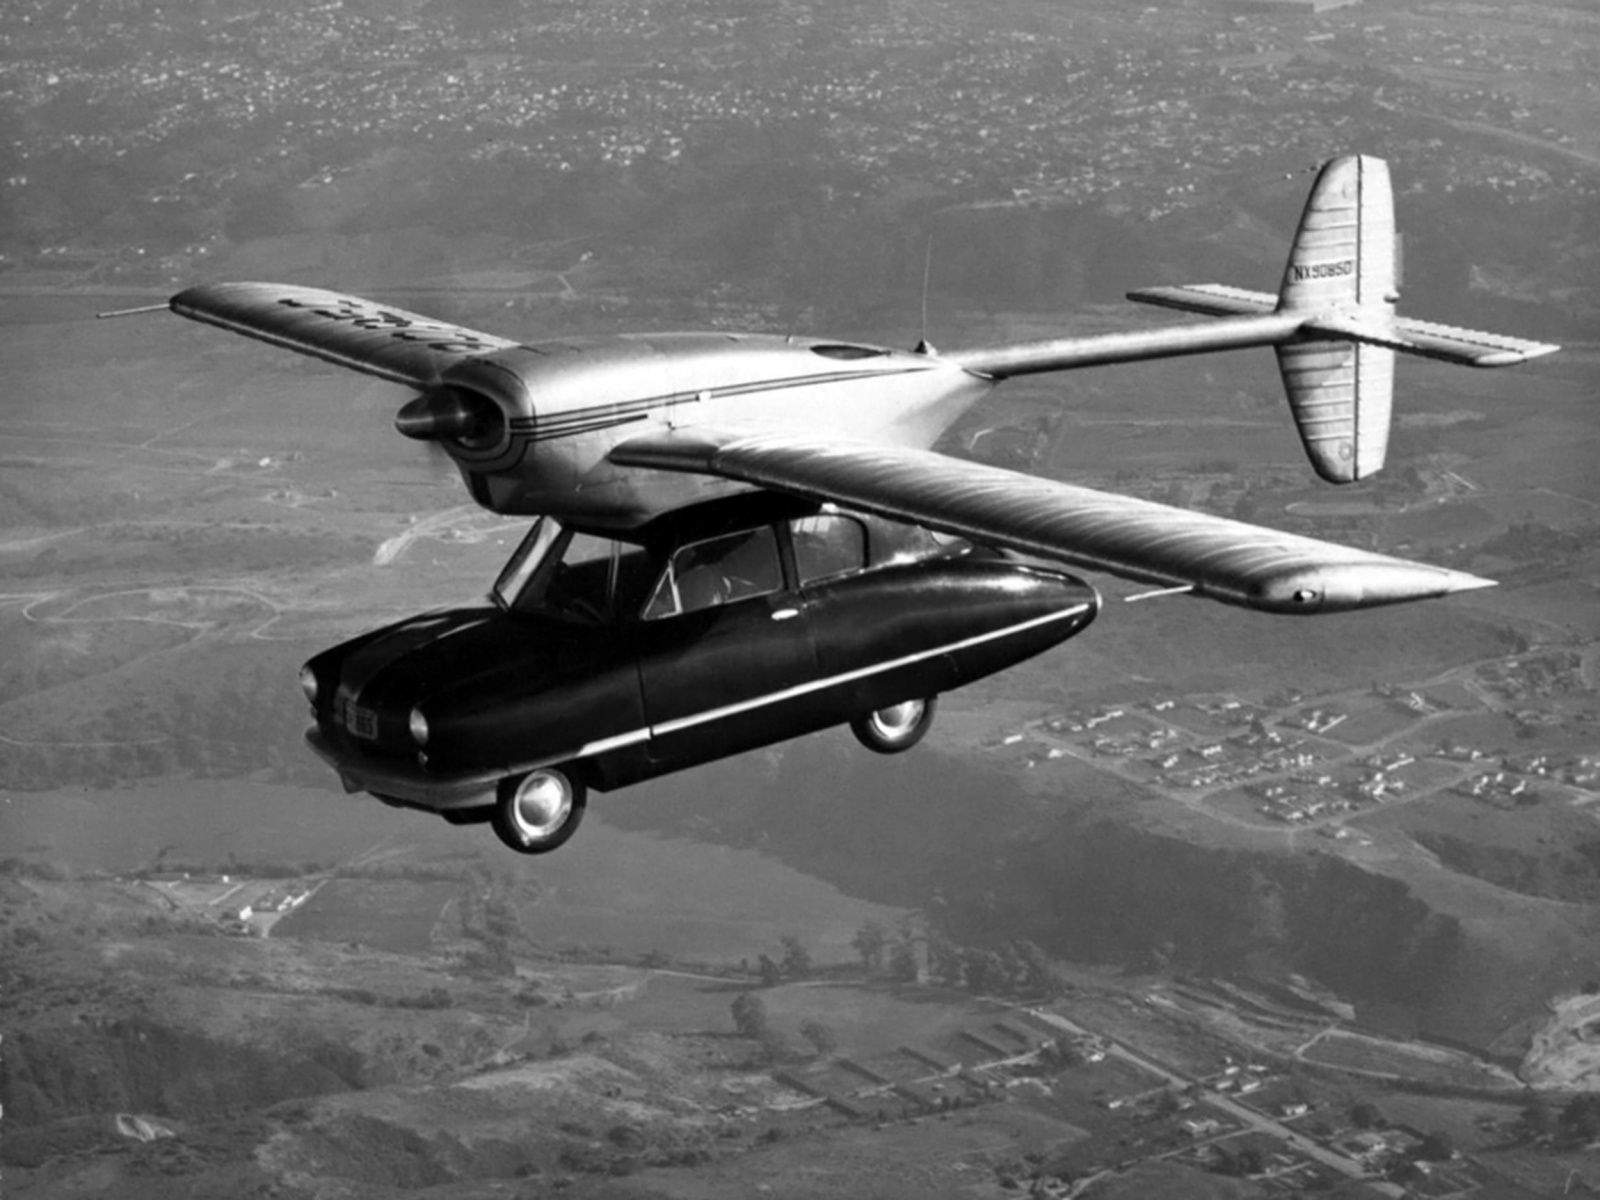 flying_car001.jpg